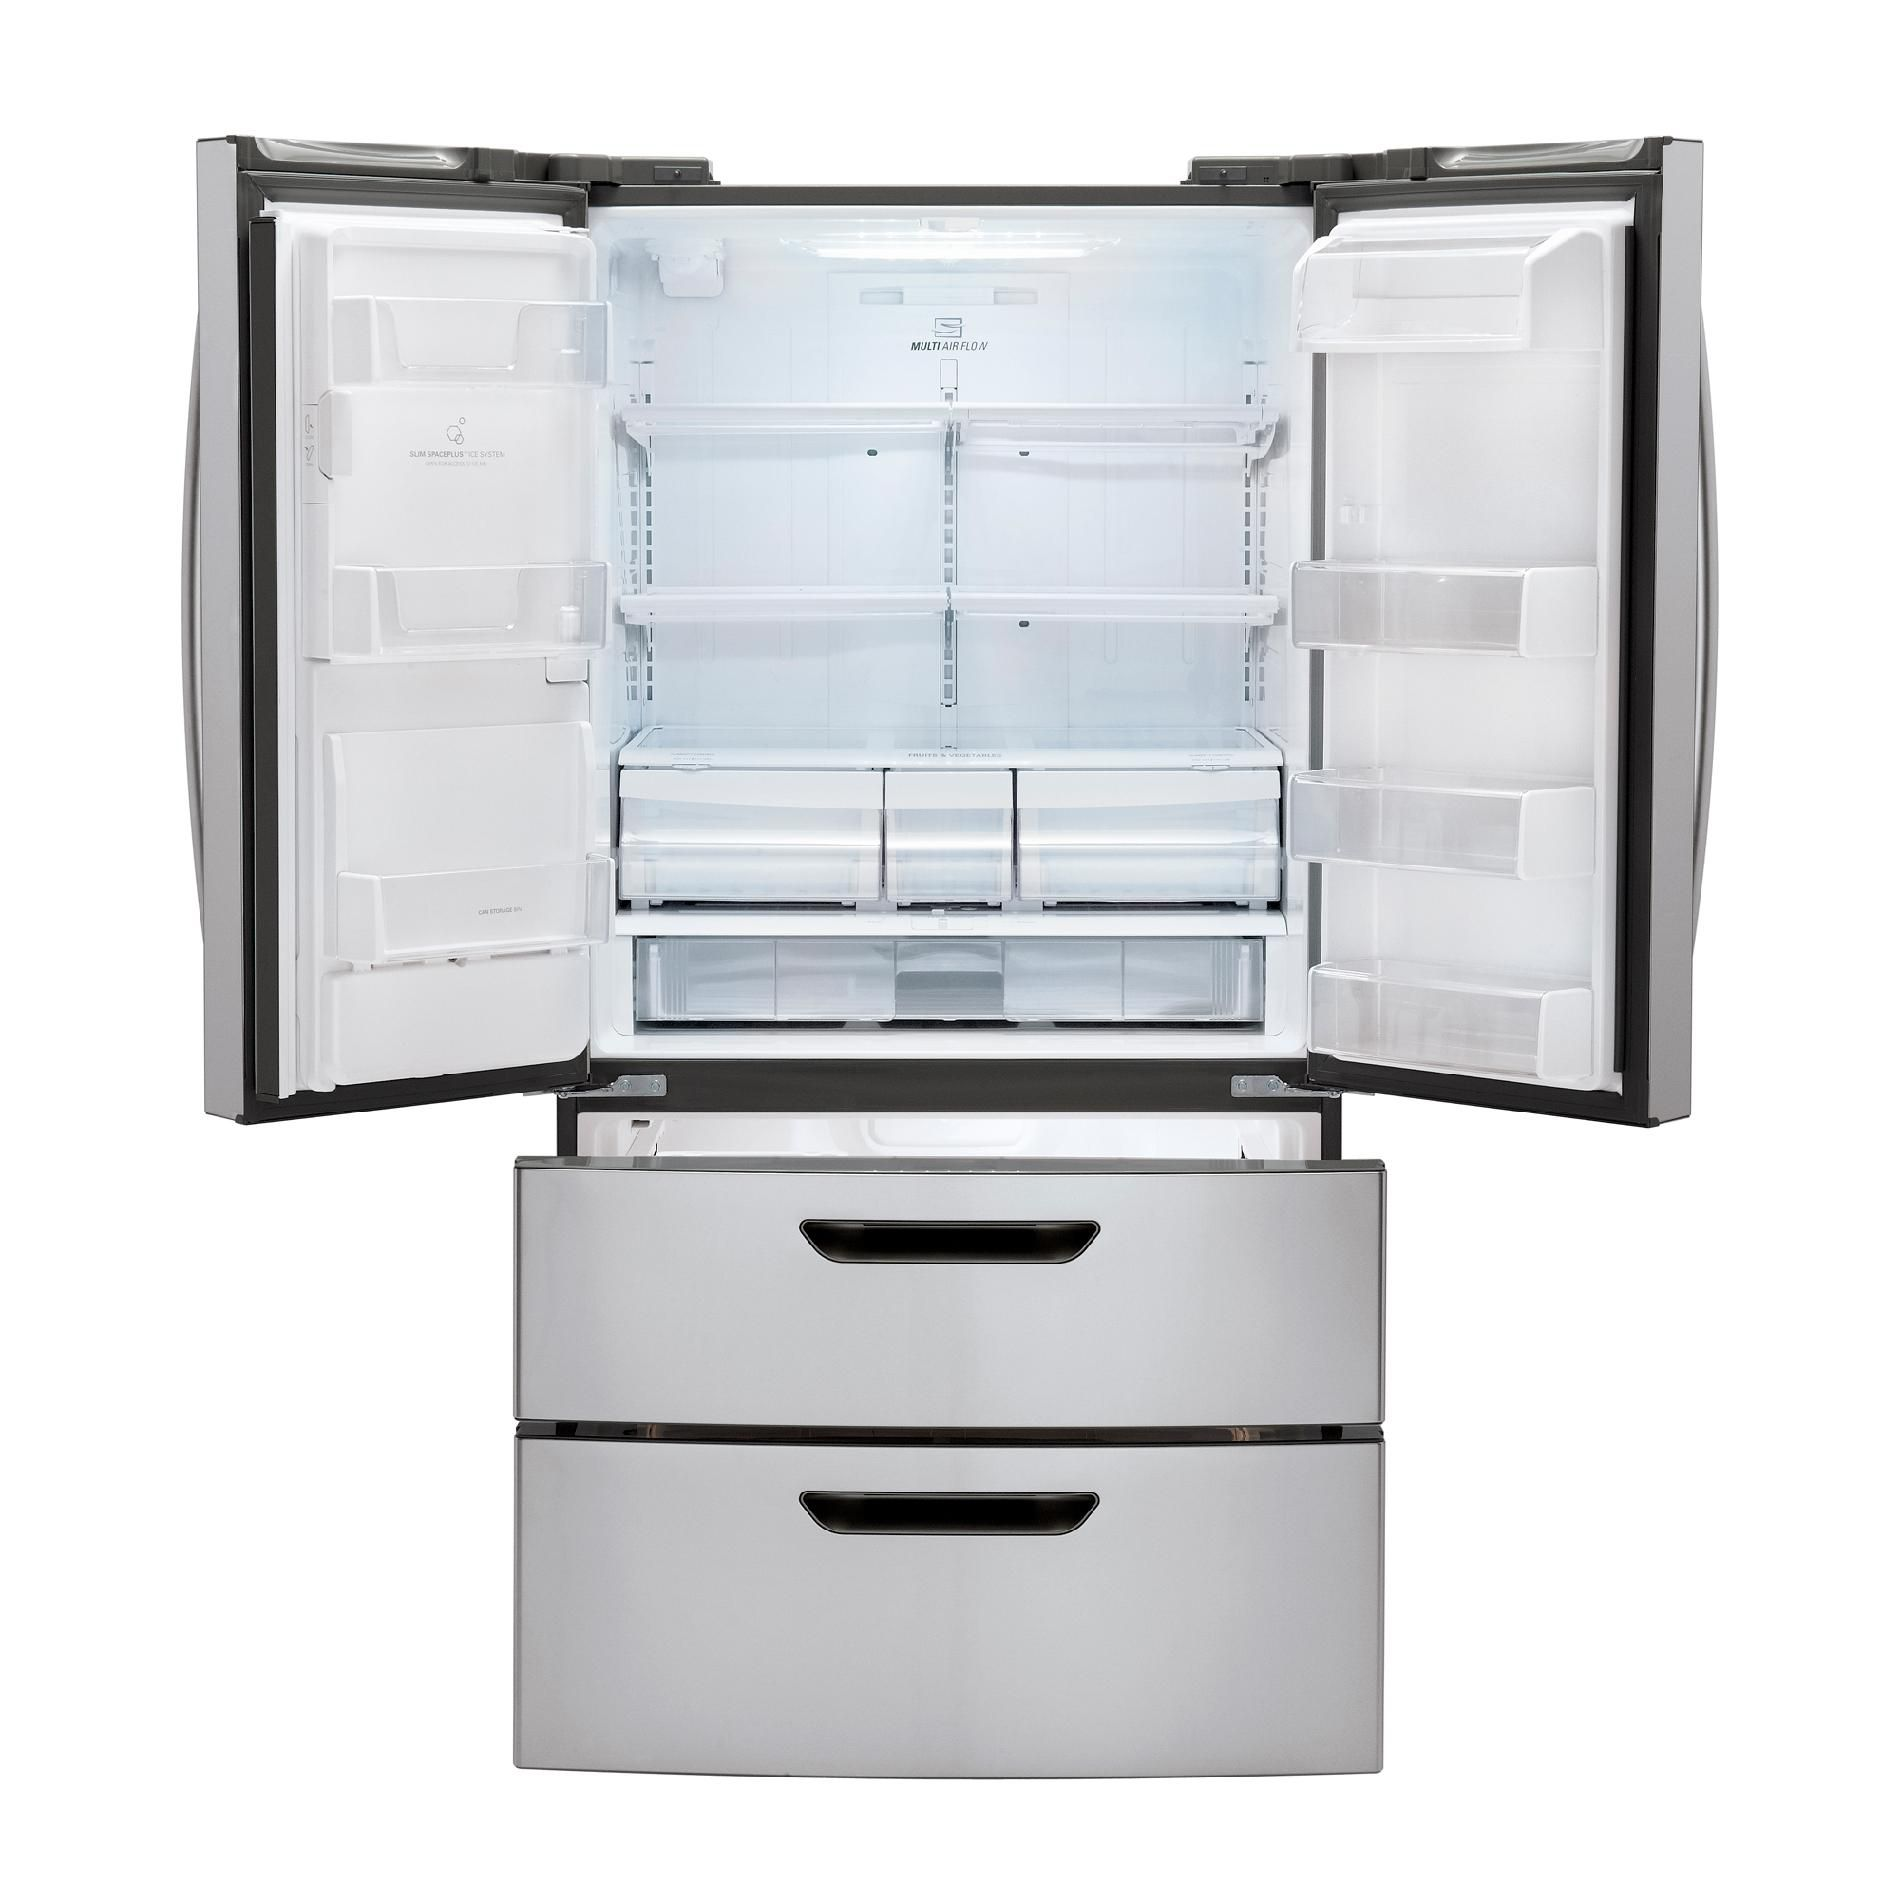 LG 24.7 cu. ft. French-Door Bottom-Freezer Refrigerator with Double Freezer Drawers, Stainless Steel